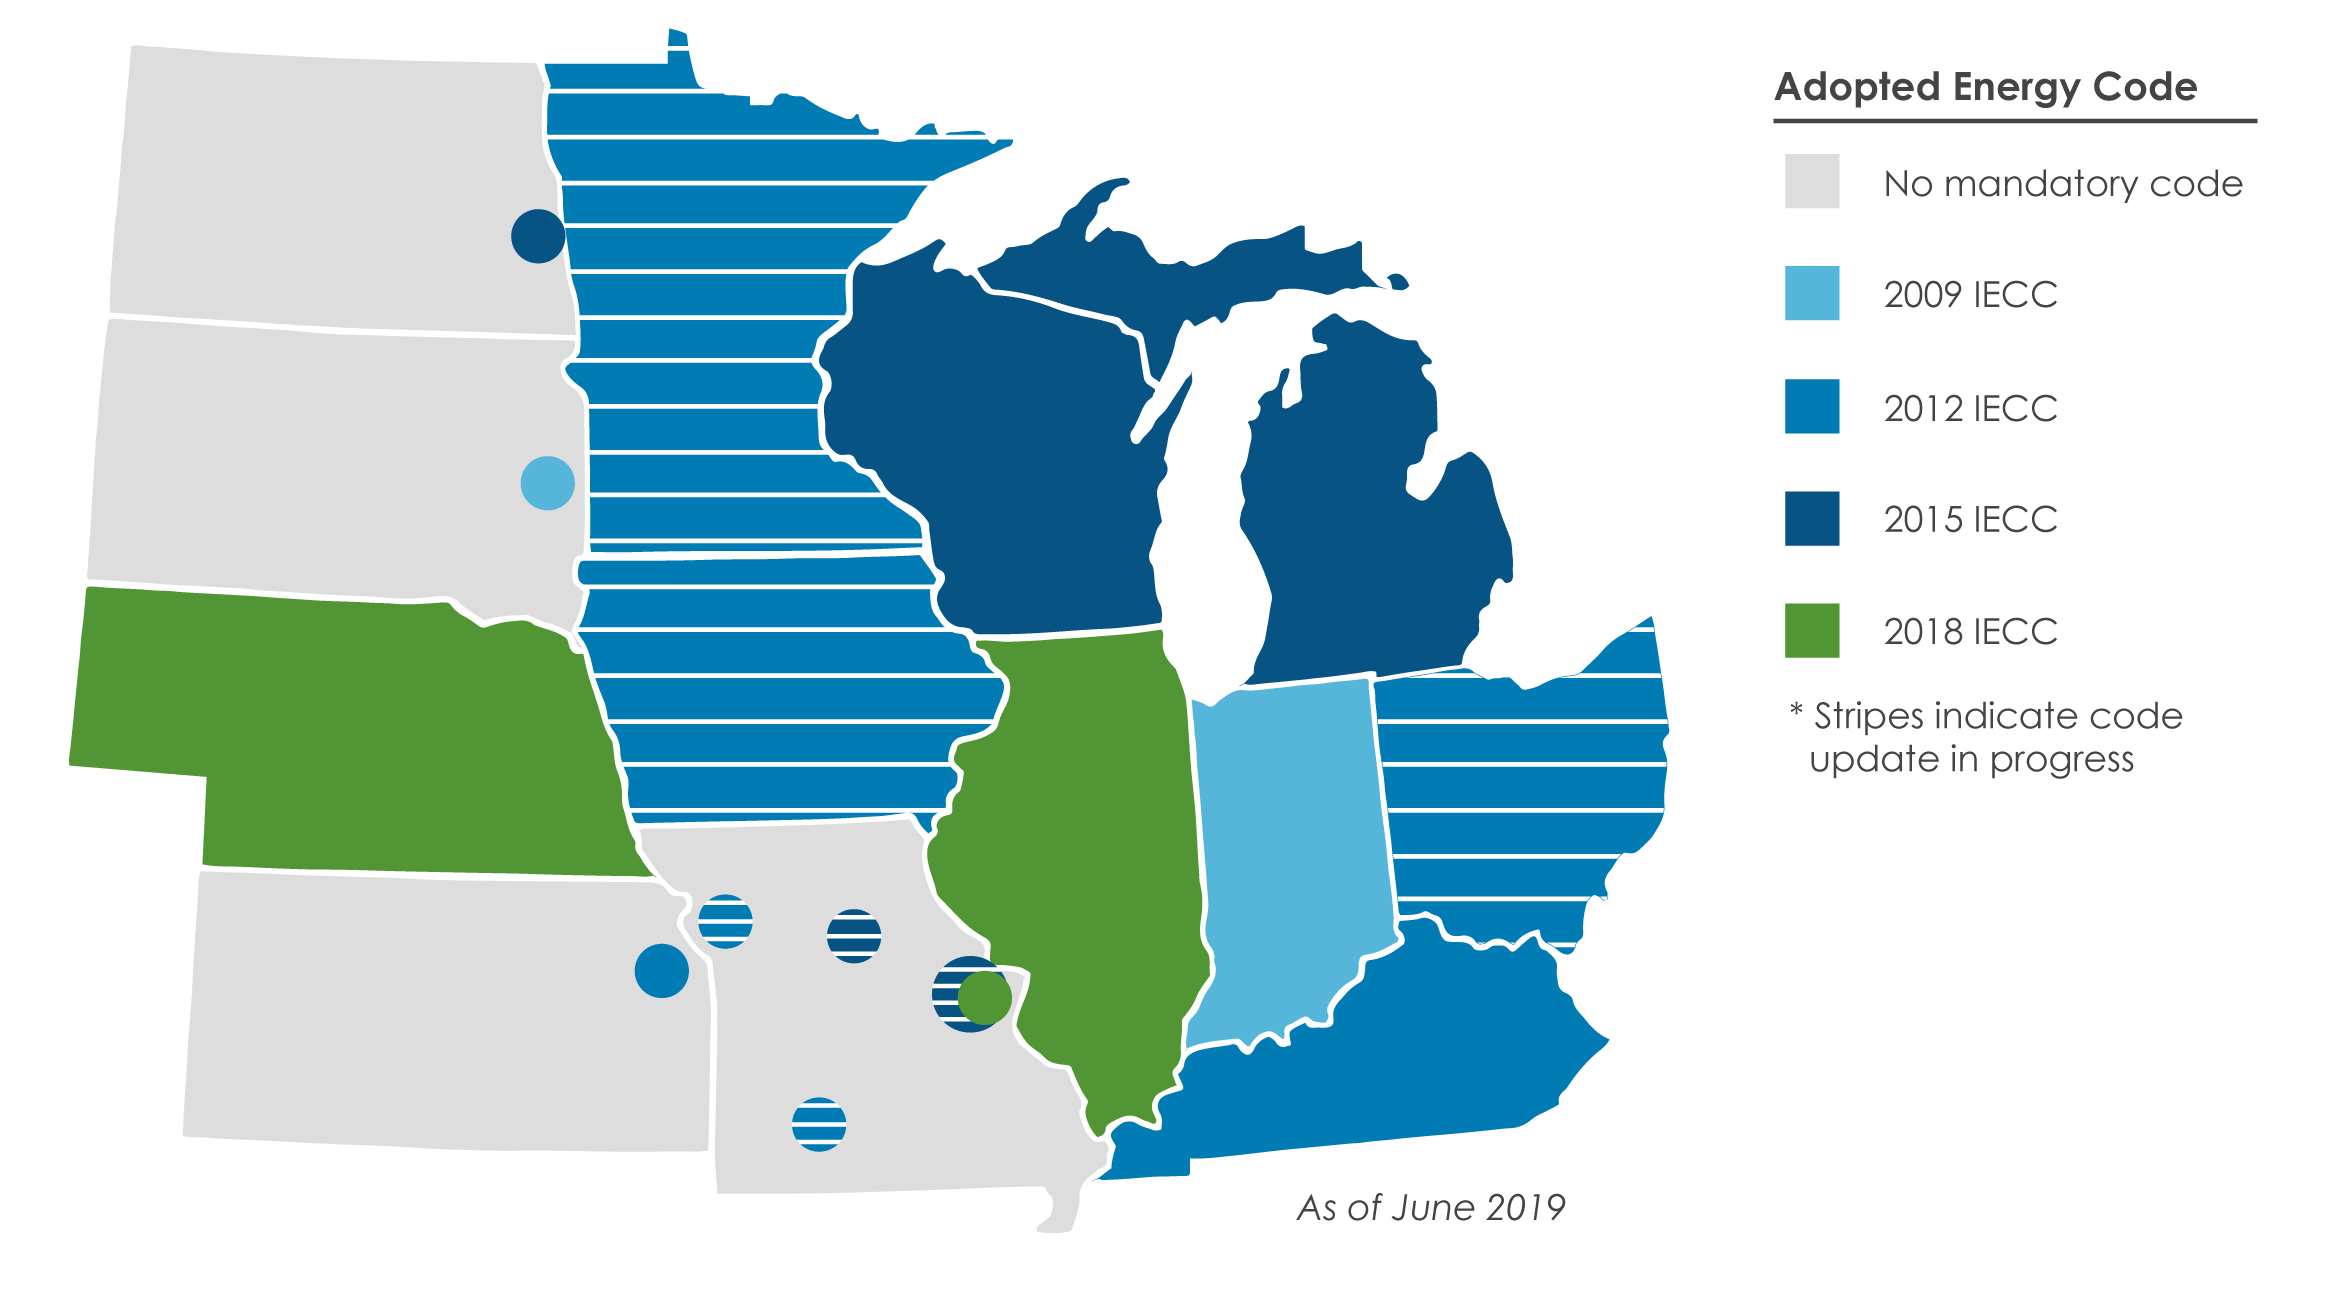 map of Midwest commercial energy code level as of 6.24.19